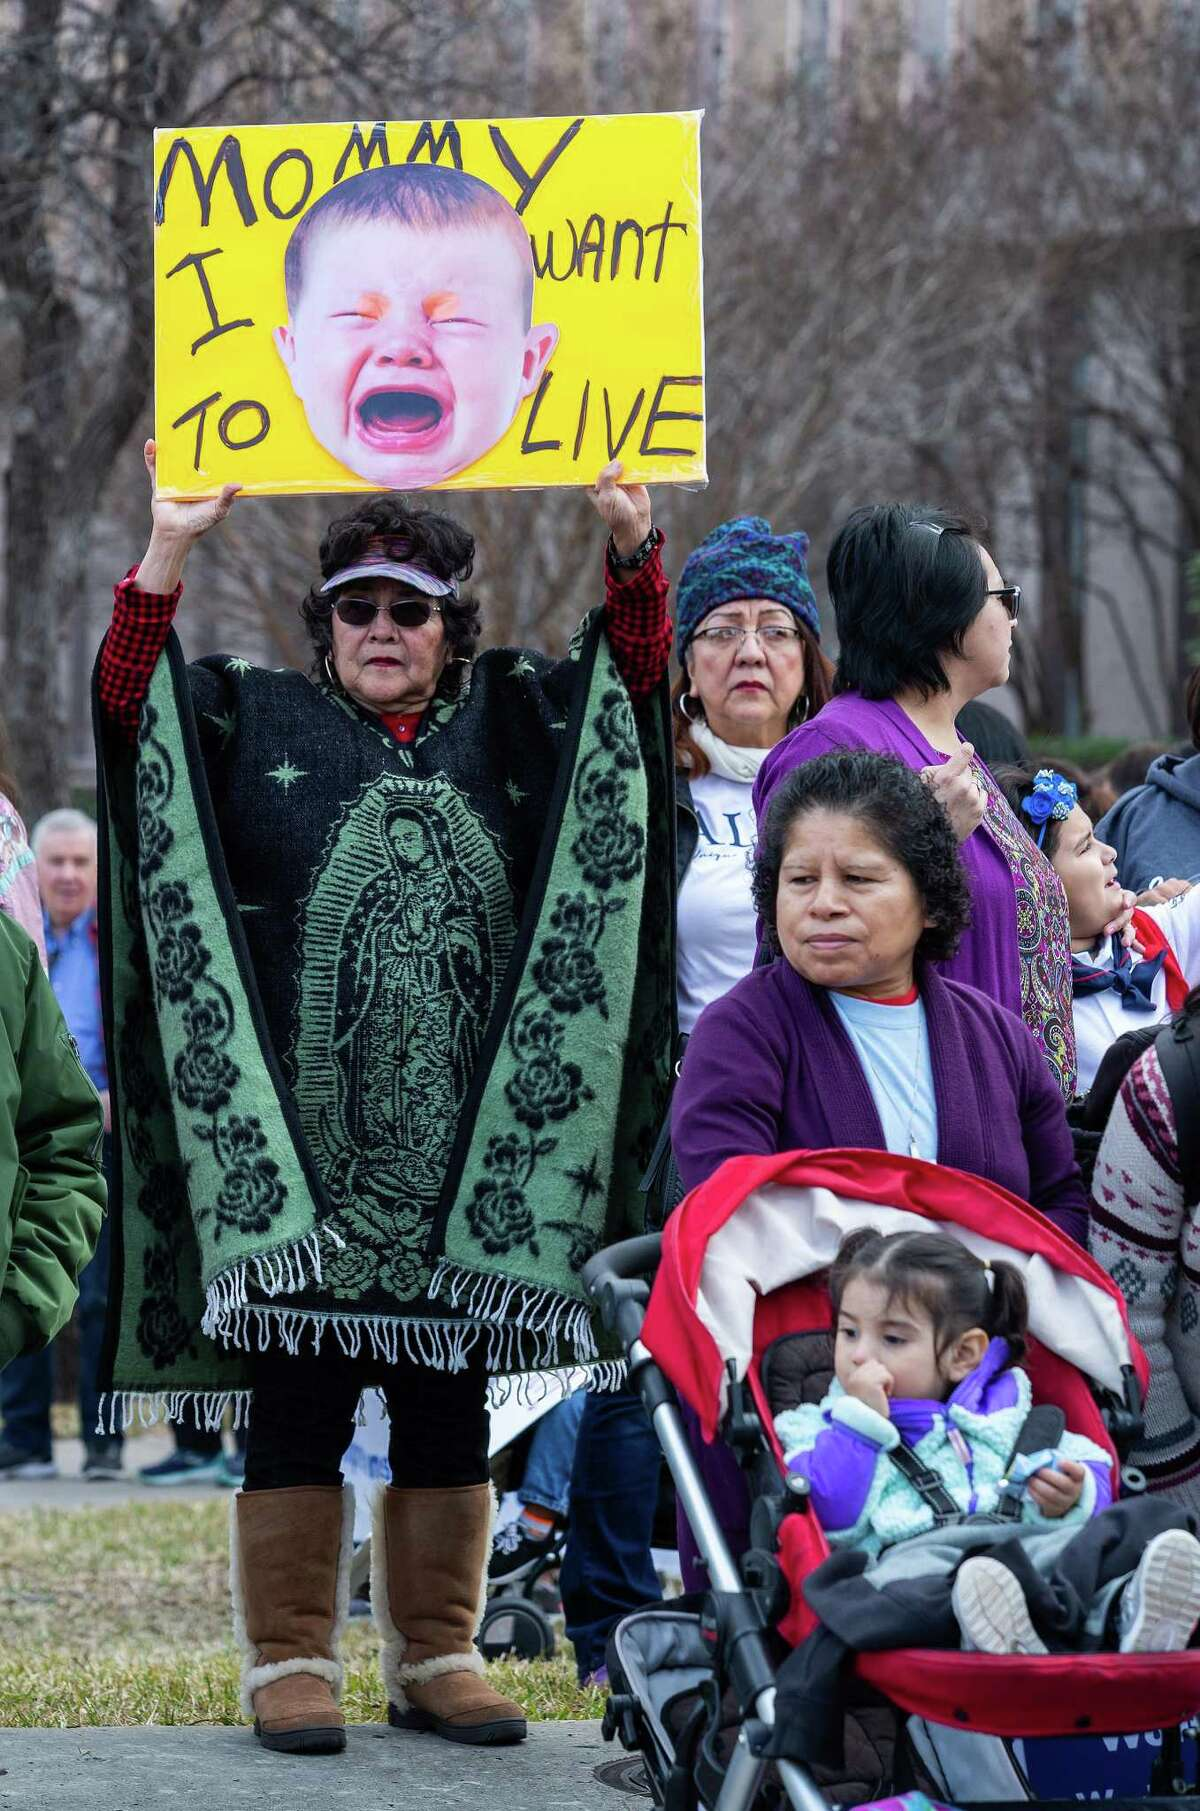 Lupe Rojas, from San Antonio, held up a sign before the start of the march during the Texas Rally for Life at the Texas State Capitol on January 26, 2019 in Austin, Texas.